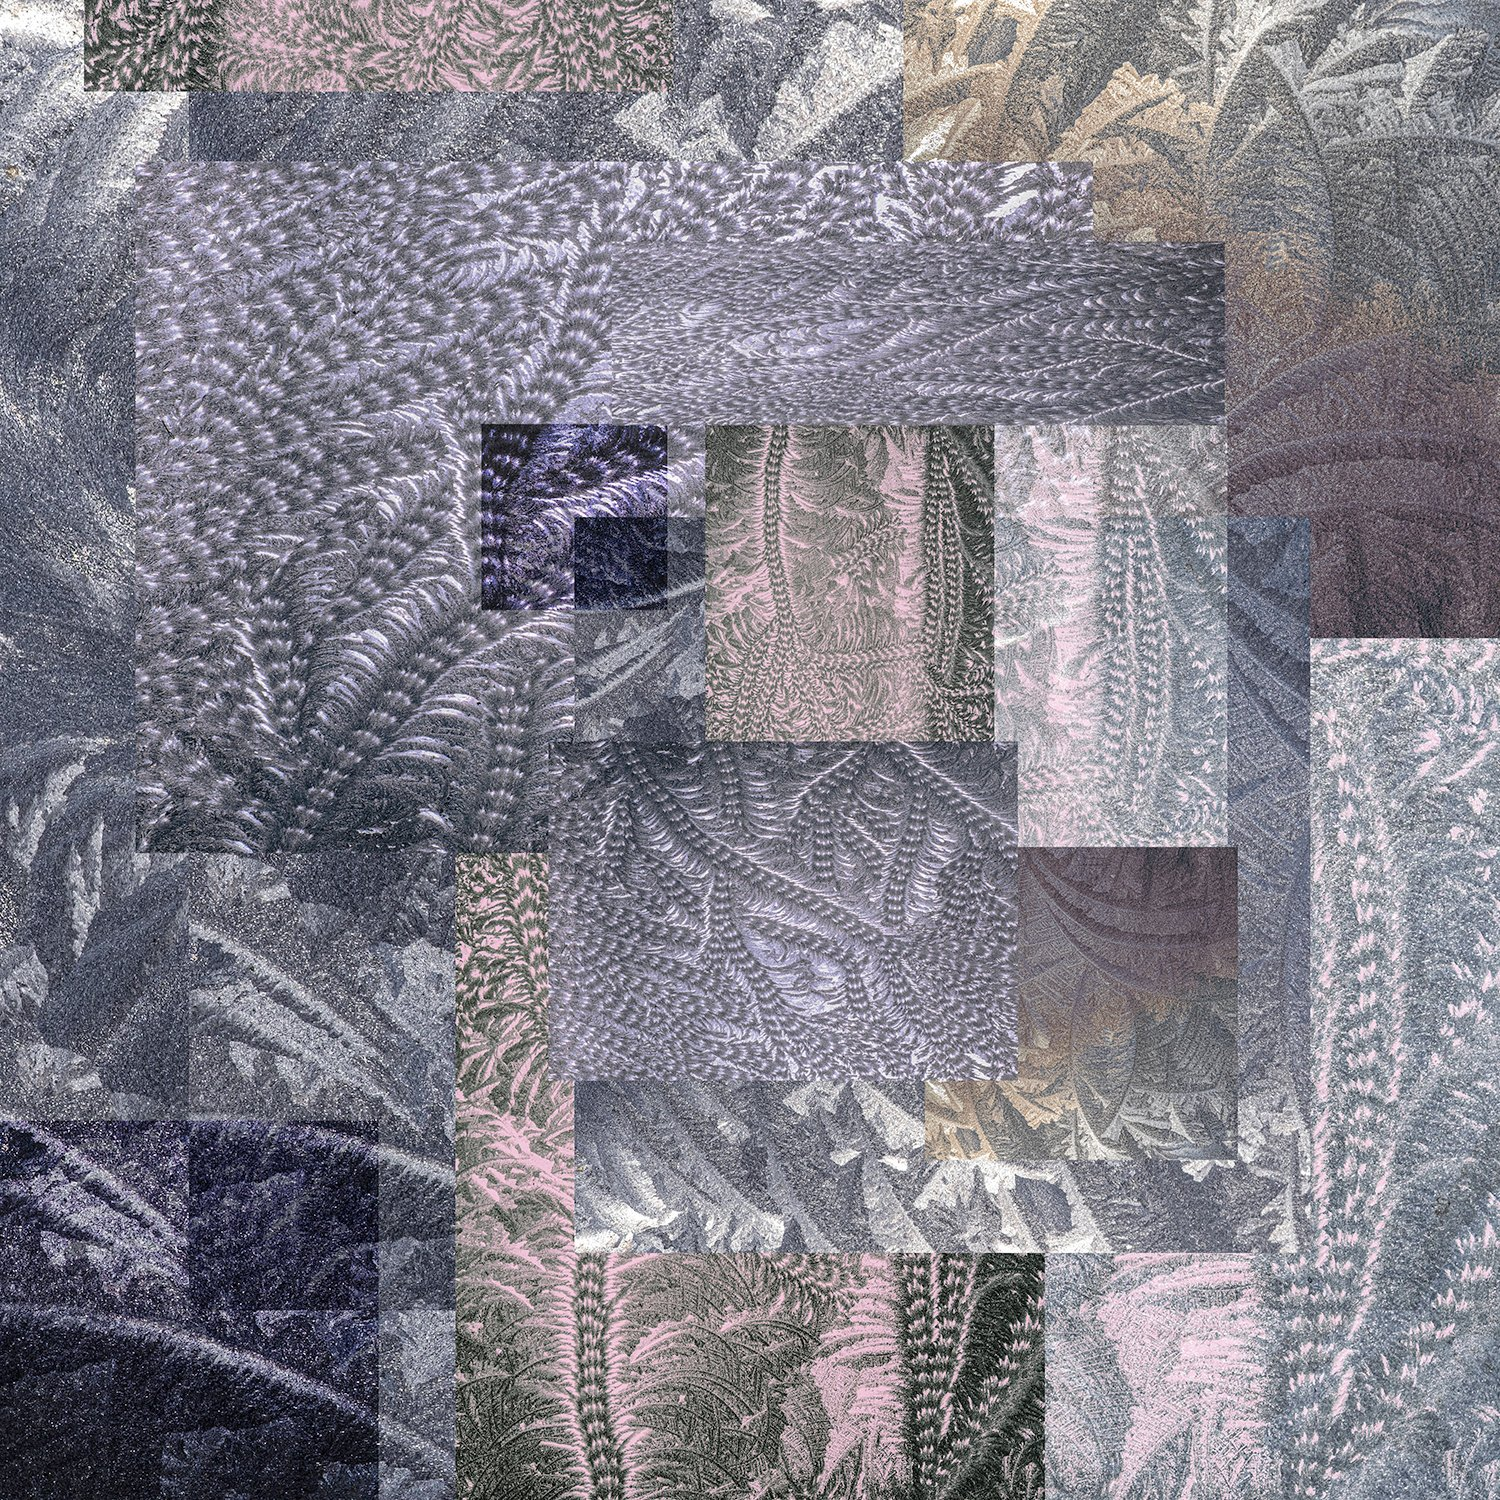 collage-shapes-textures-frost-patterns-pale-ombre-dark-purple-pressed-glass-pink-fern-scroll